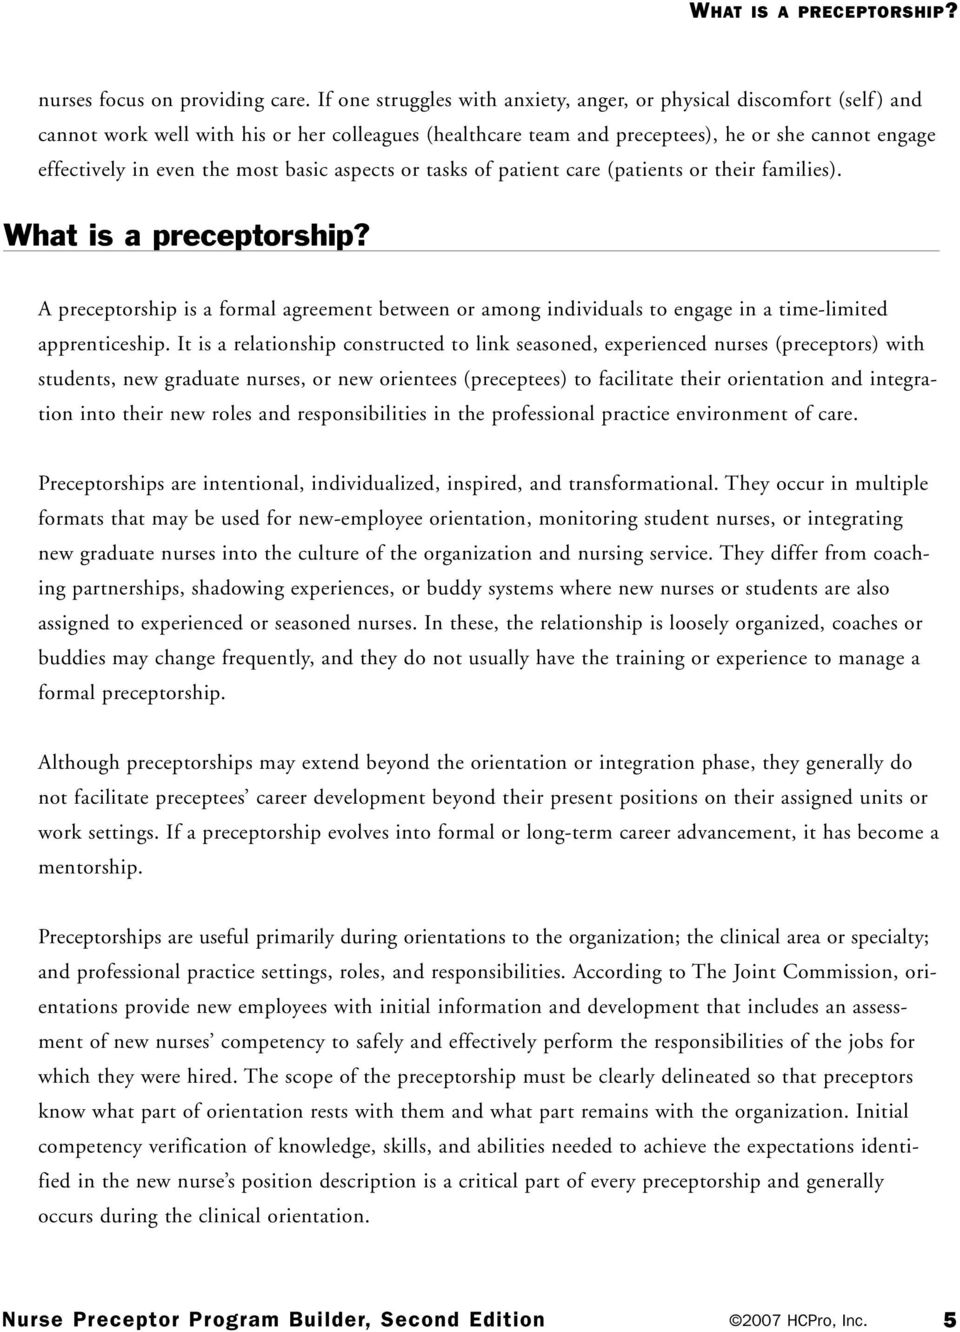 most basic aspects or tasks of patient care (patients or their families). What is a preceptorship?